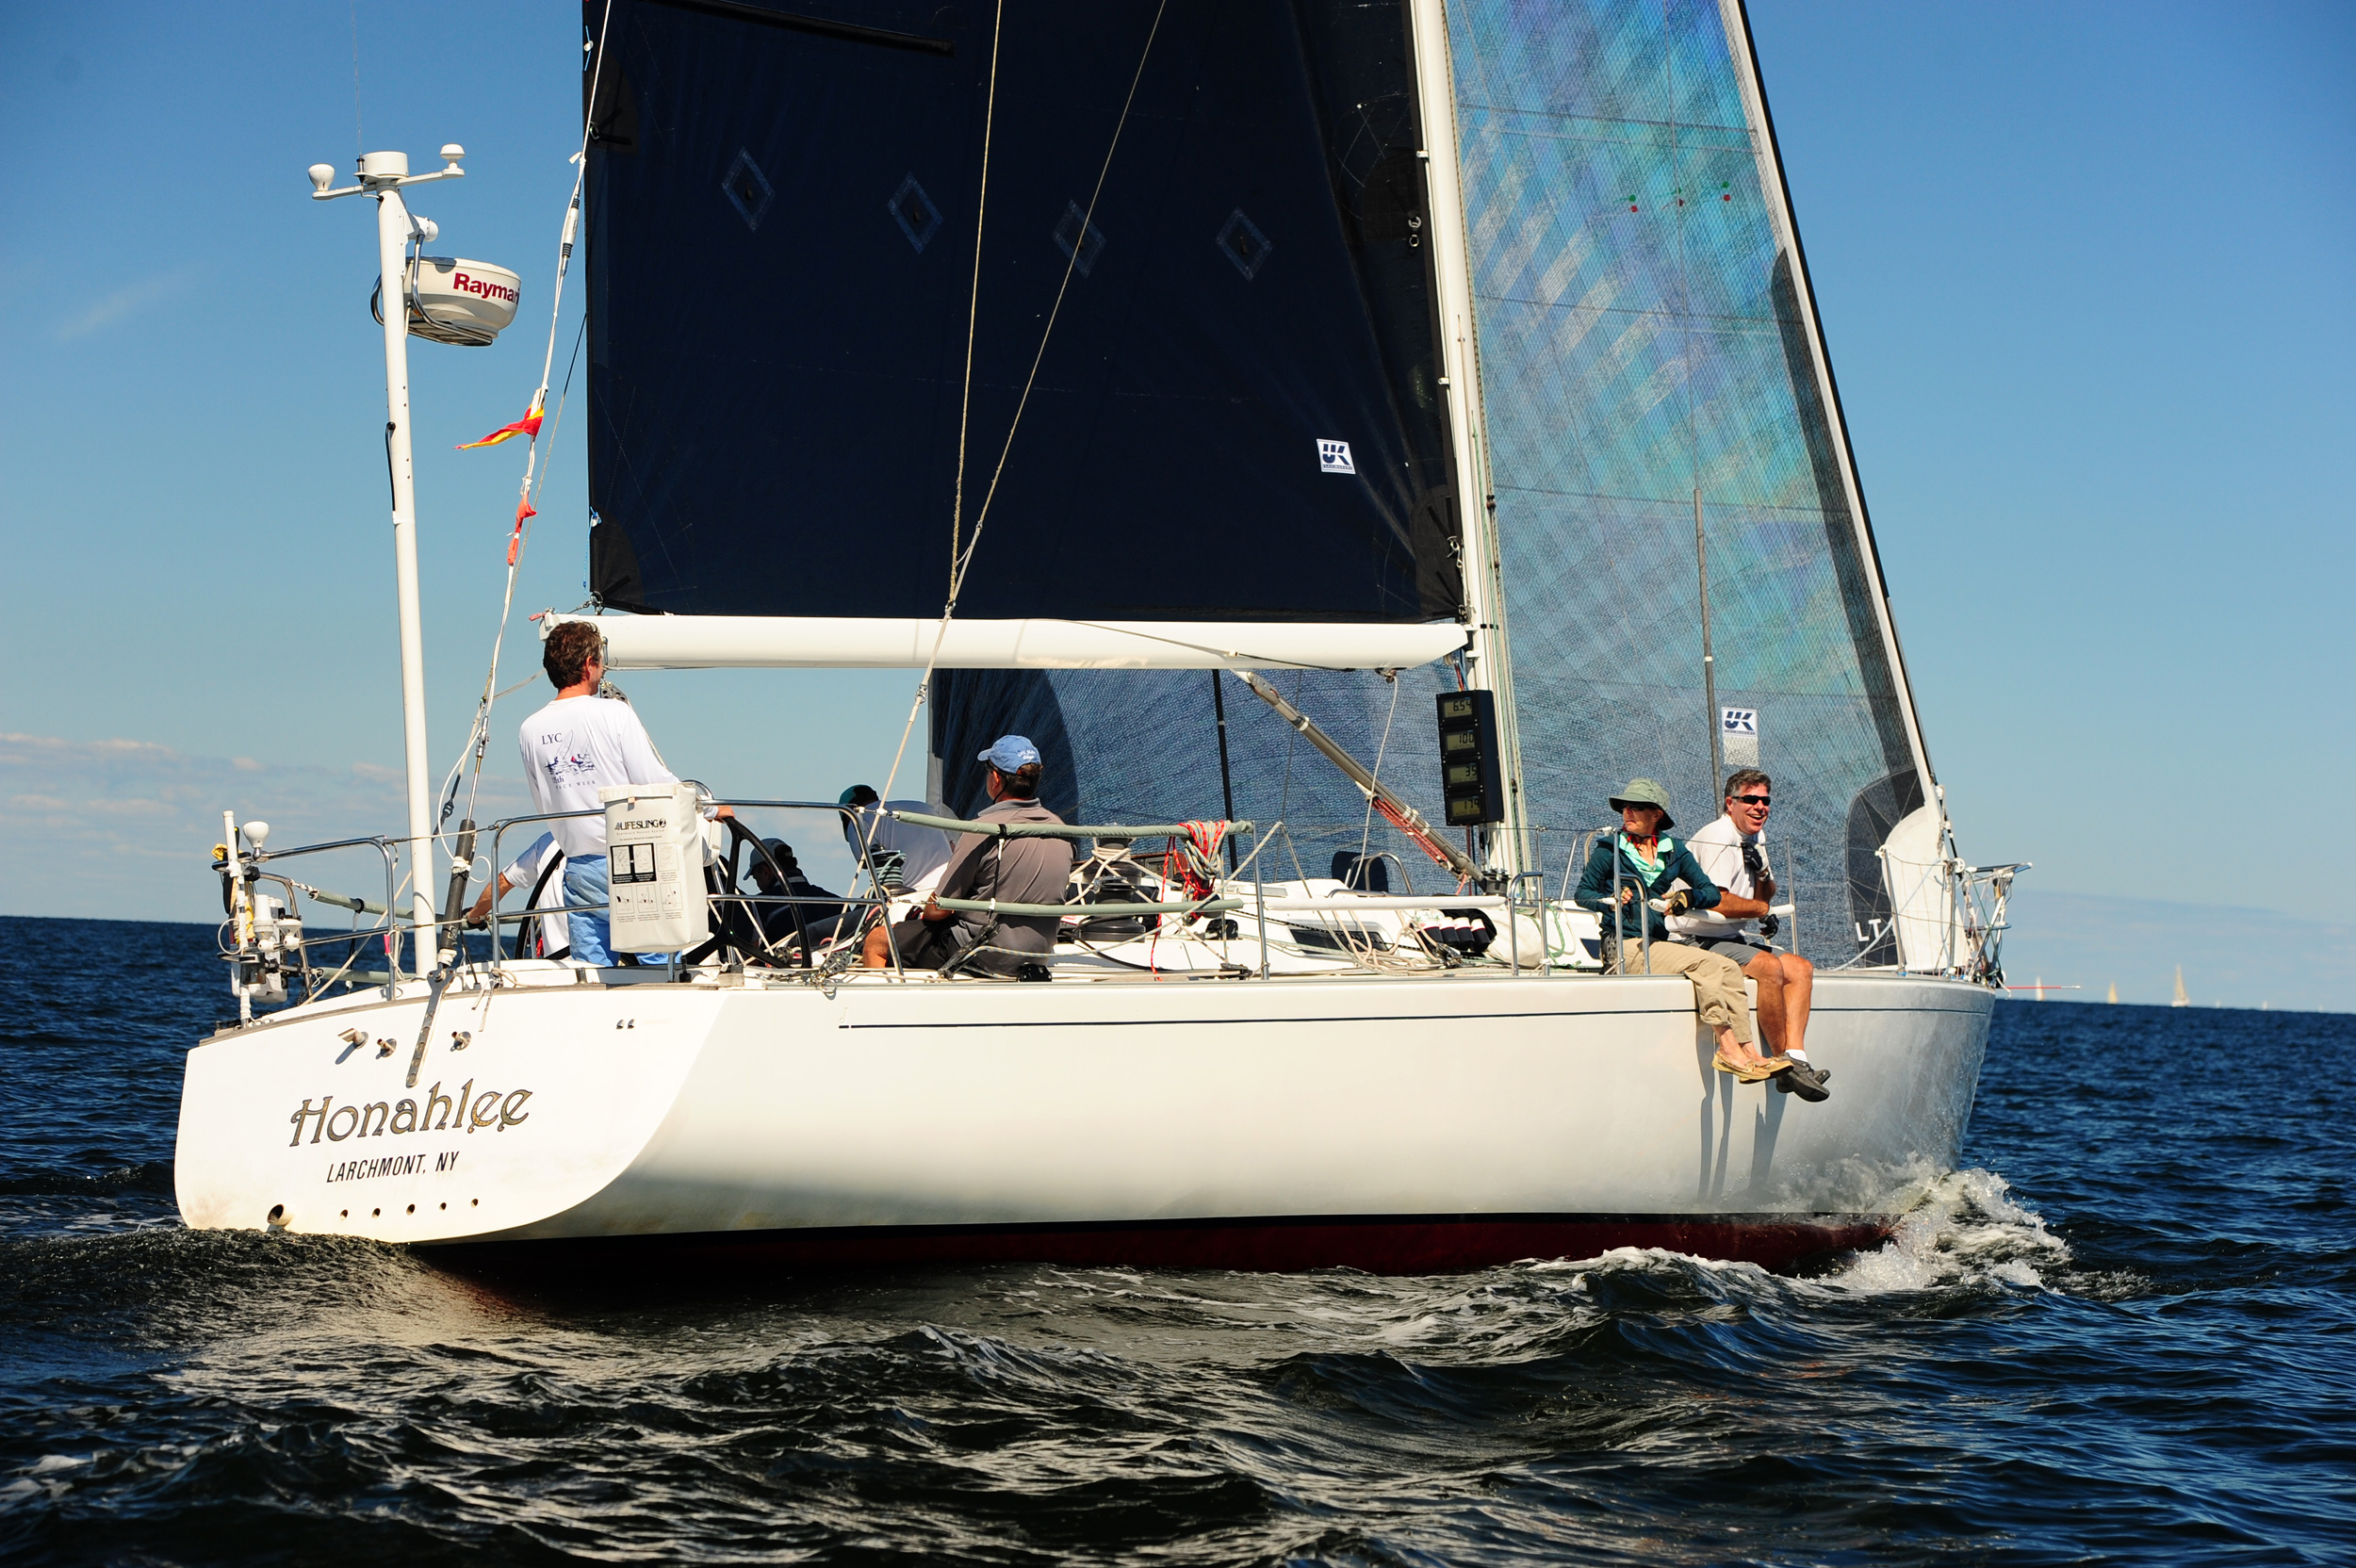 2014 Vineyard Race A 1672